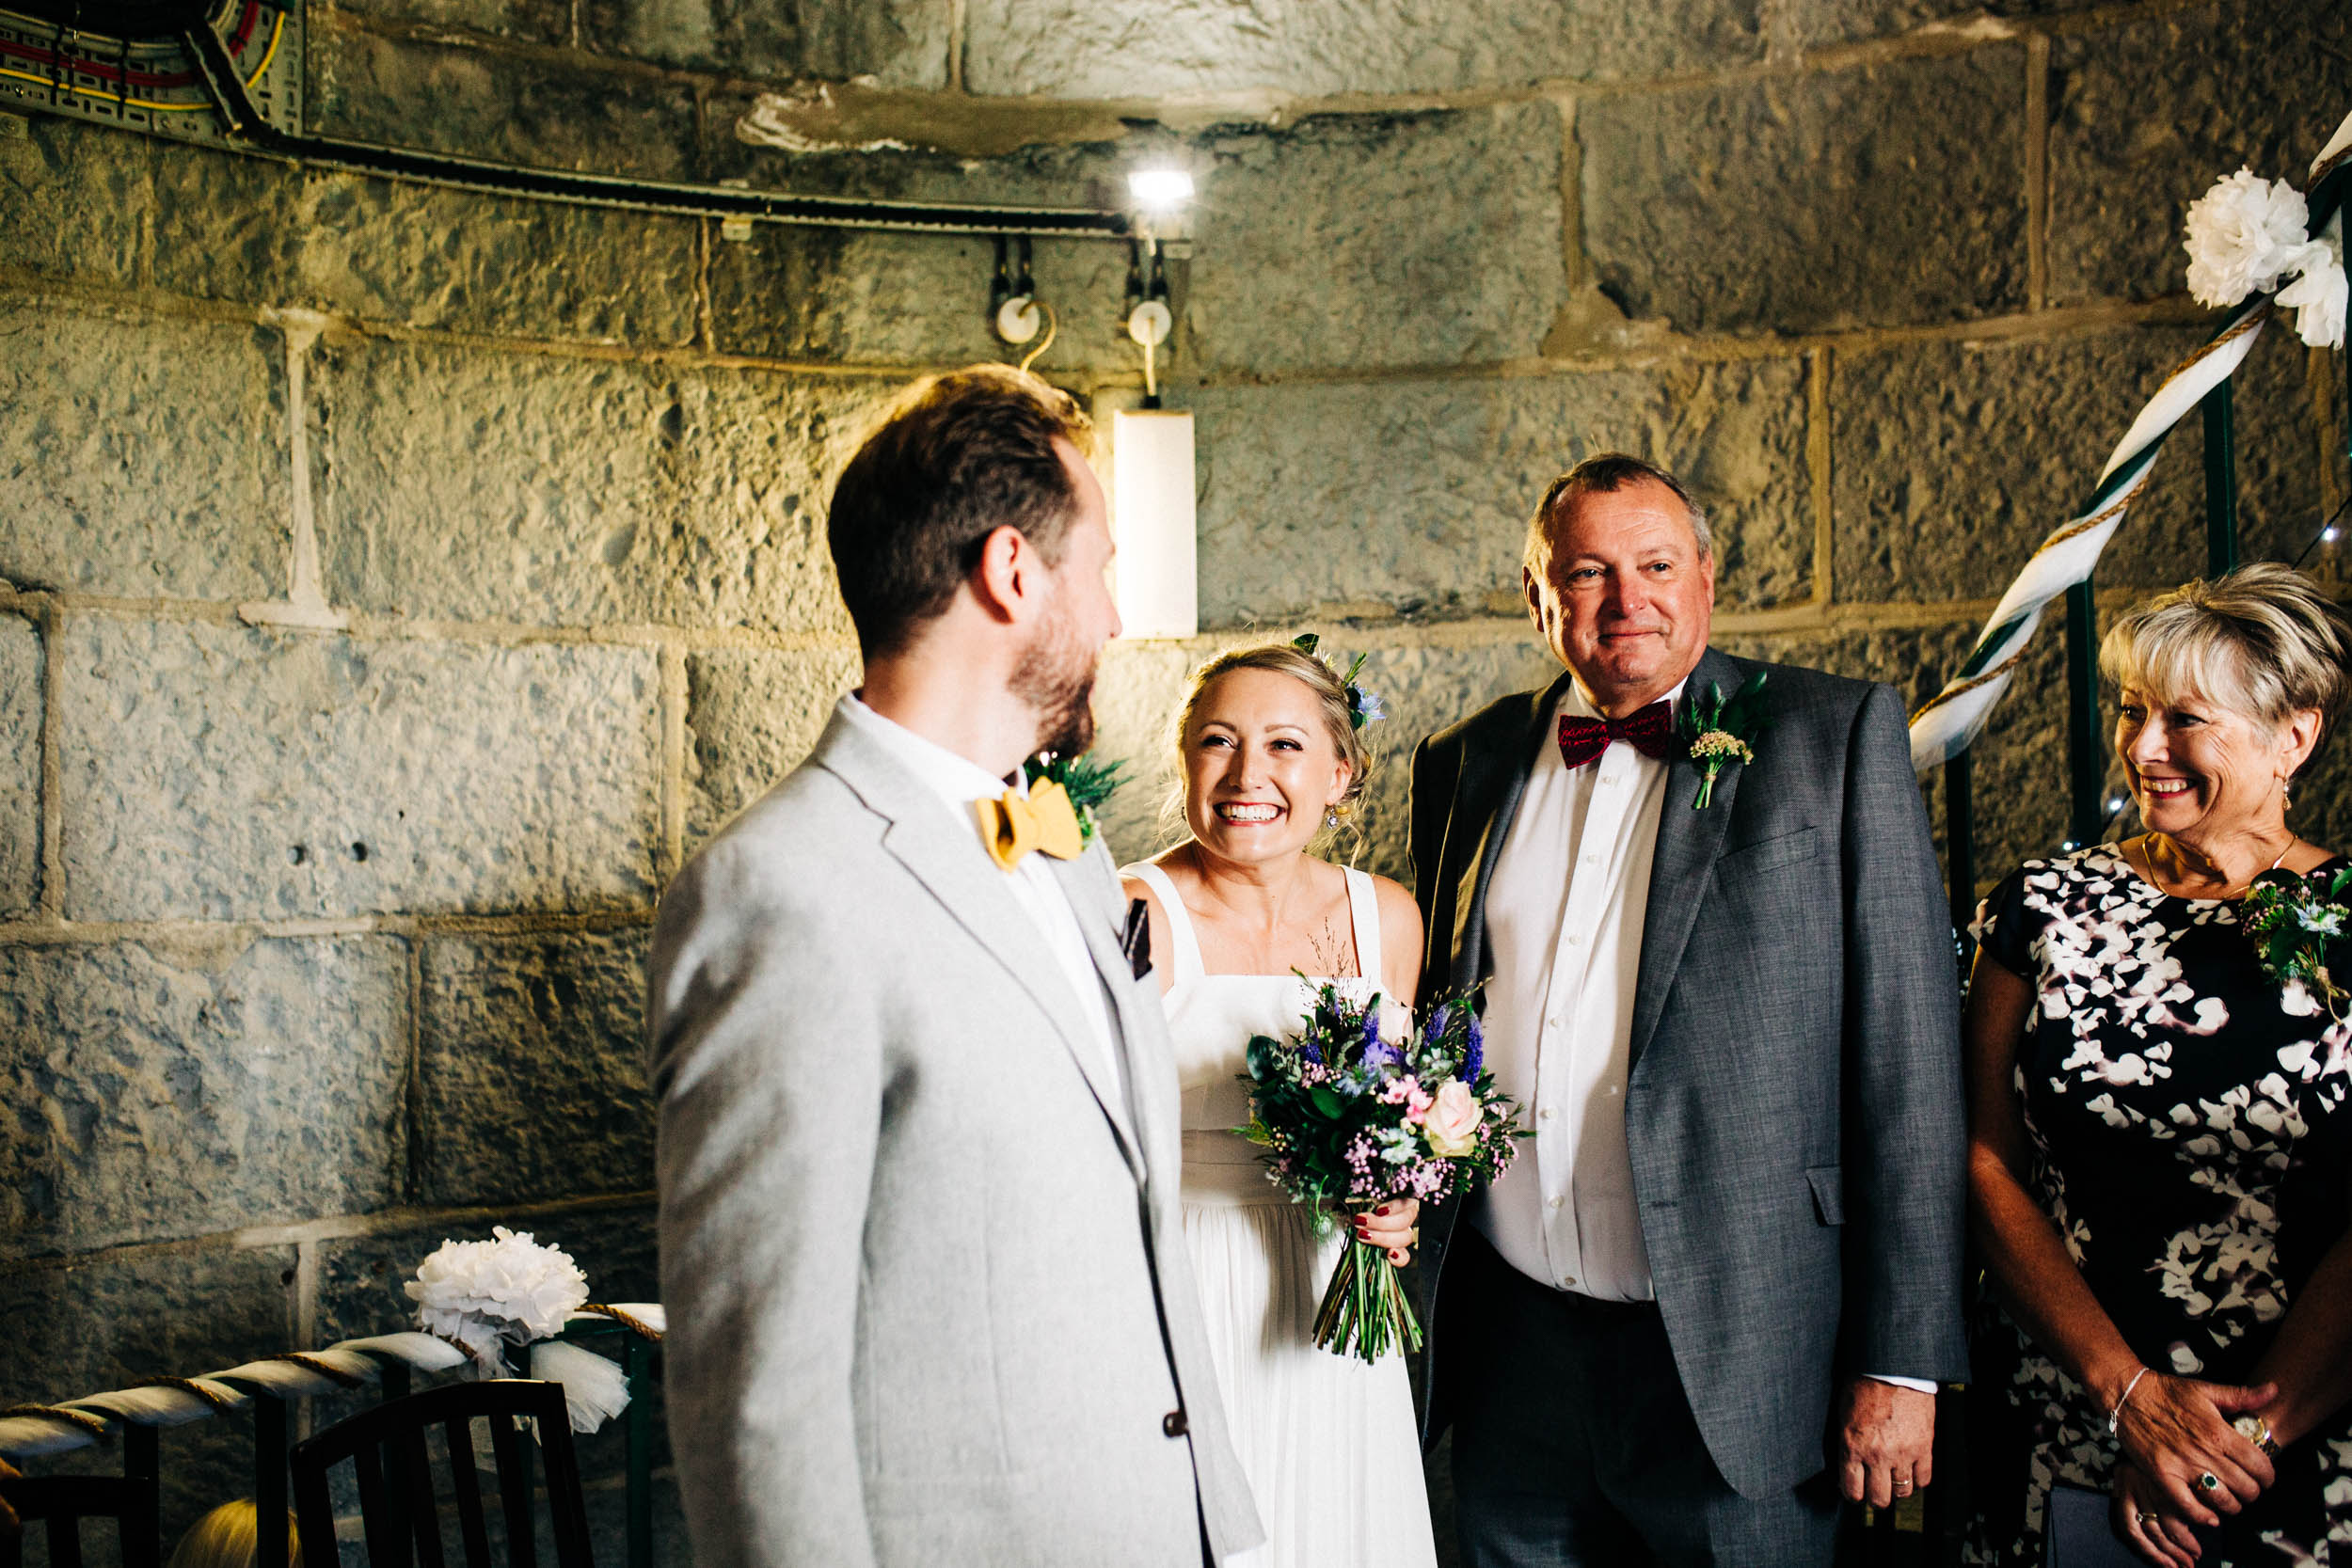 Alex_Sedgmond_Photography-MonkNashLighthouse-WeddingPhotography-Penny&Mike-60.jpg